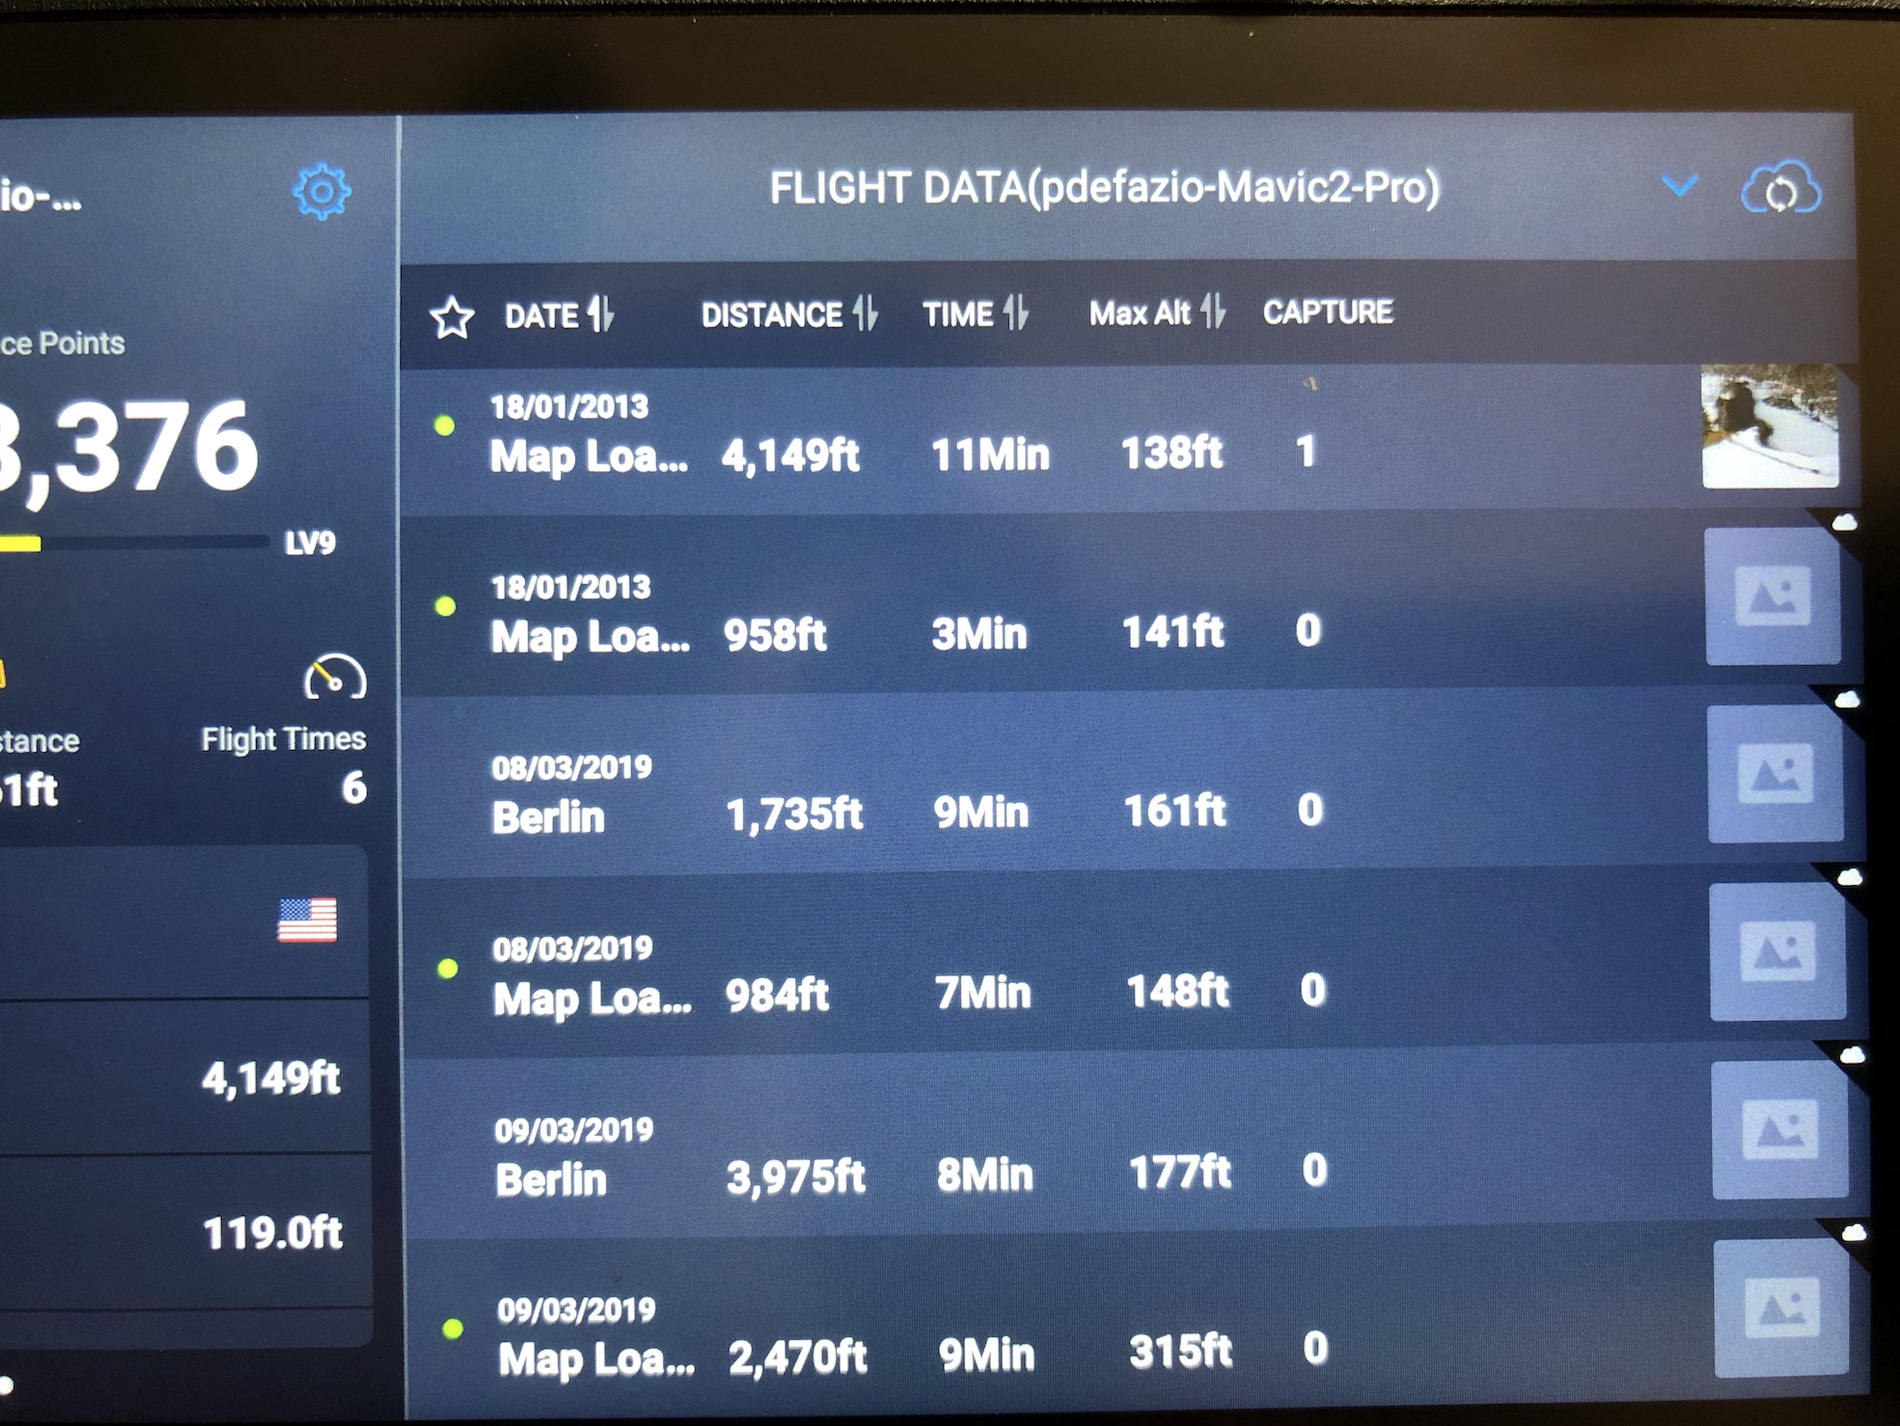 Flight Data Screen